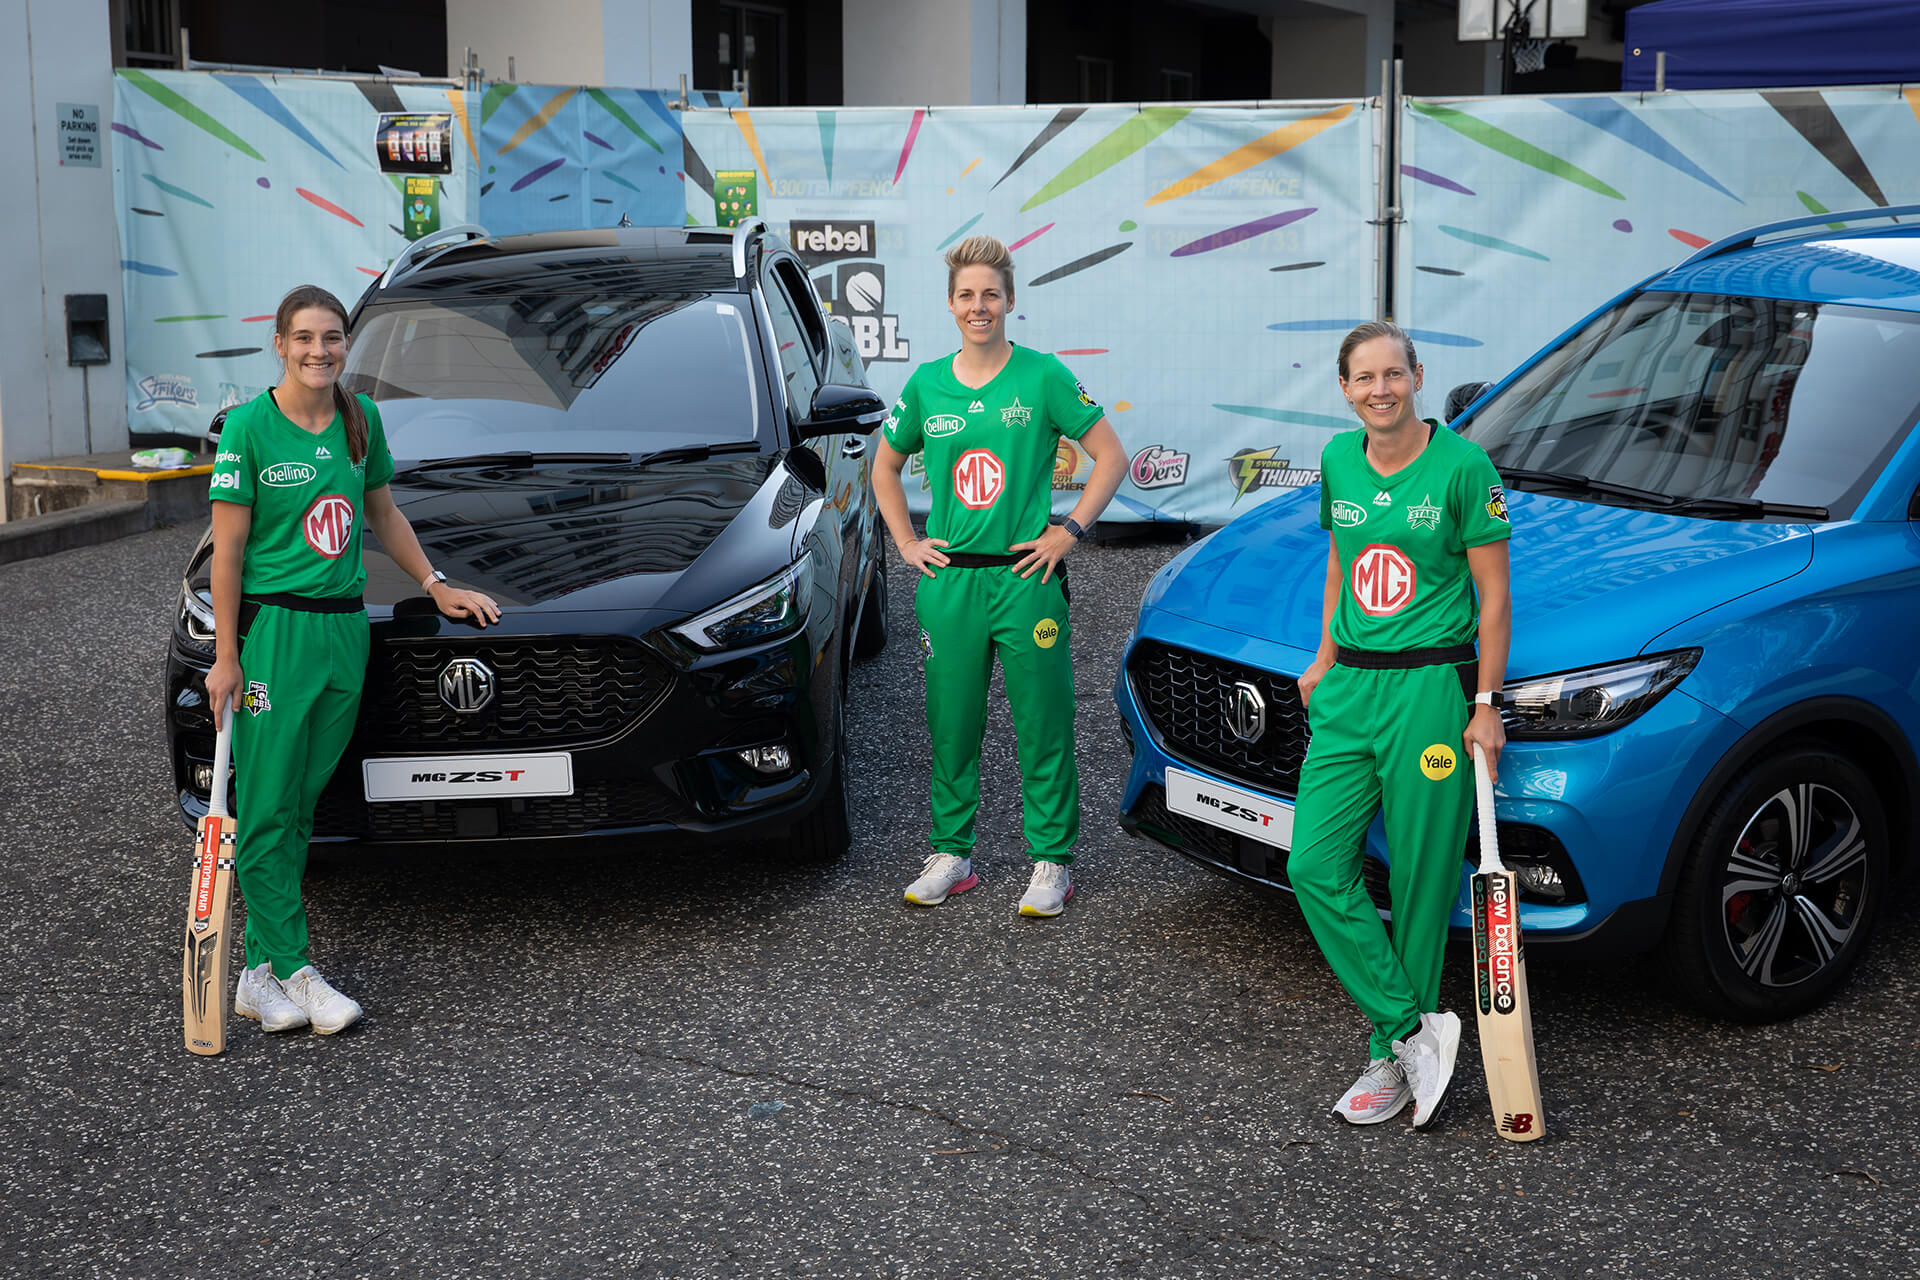 The Melbourne Stars will drive into the next three Big Bash seasons with the support of Official Vehicle Partner MG Motor.